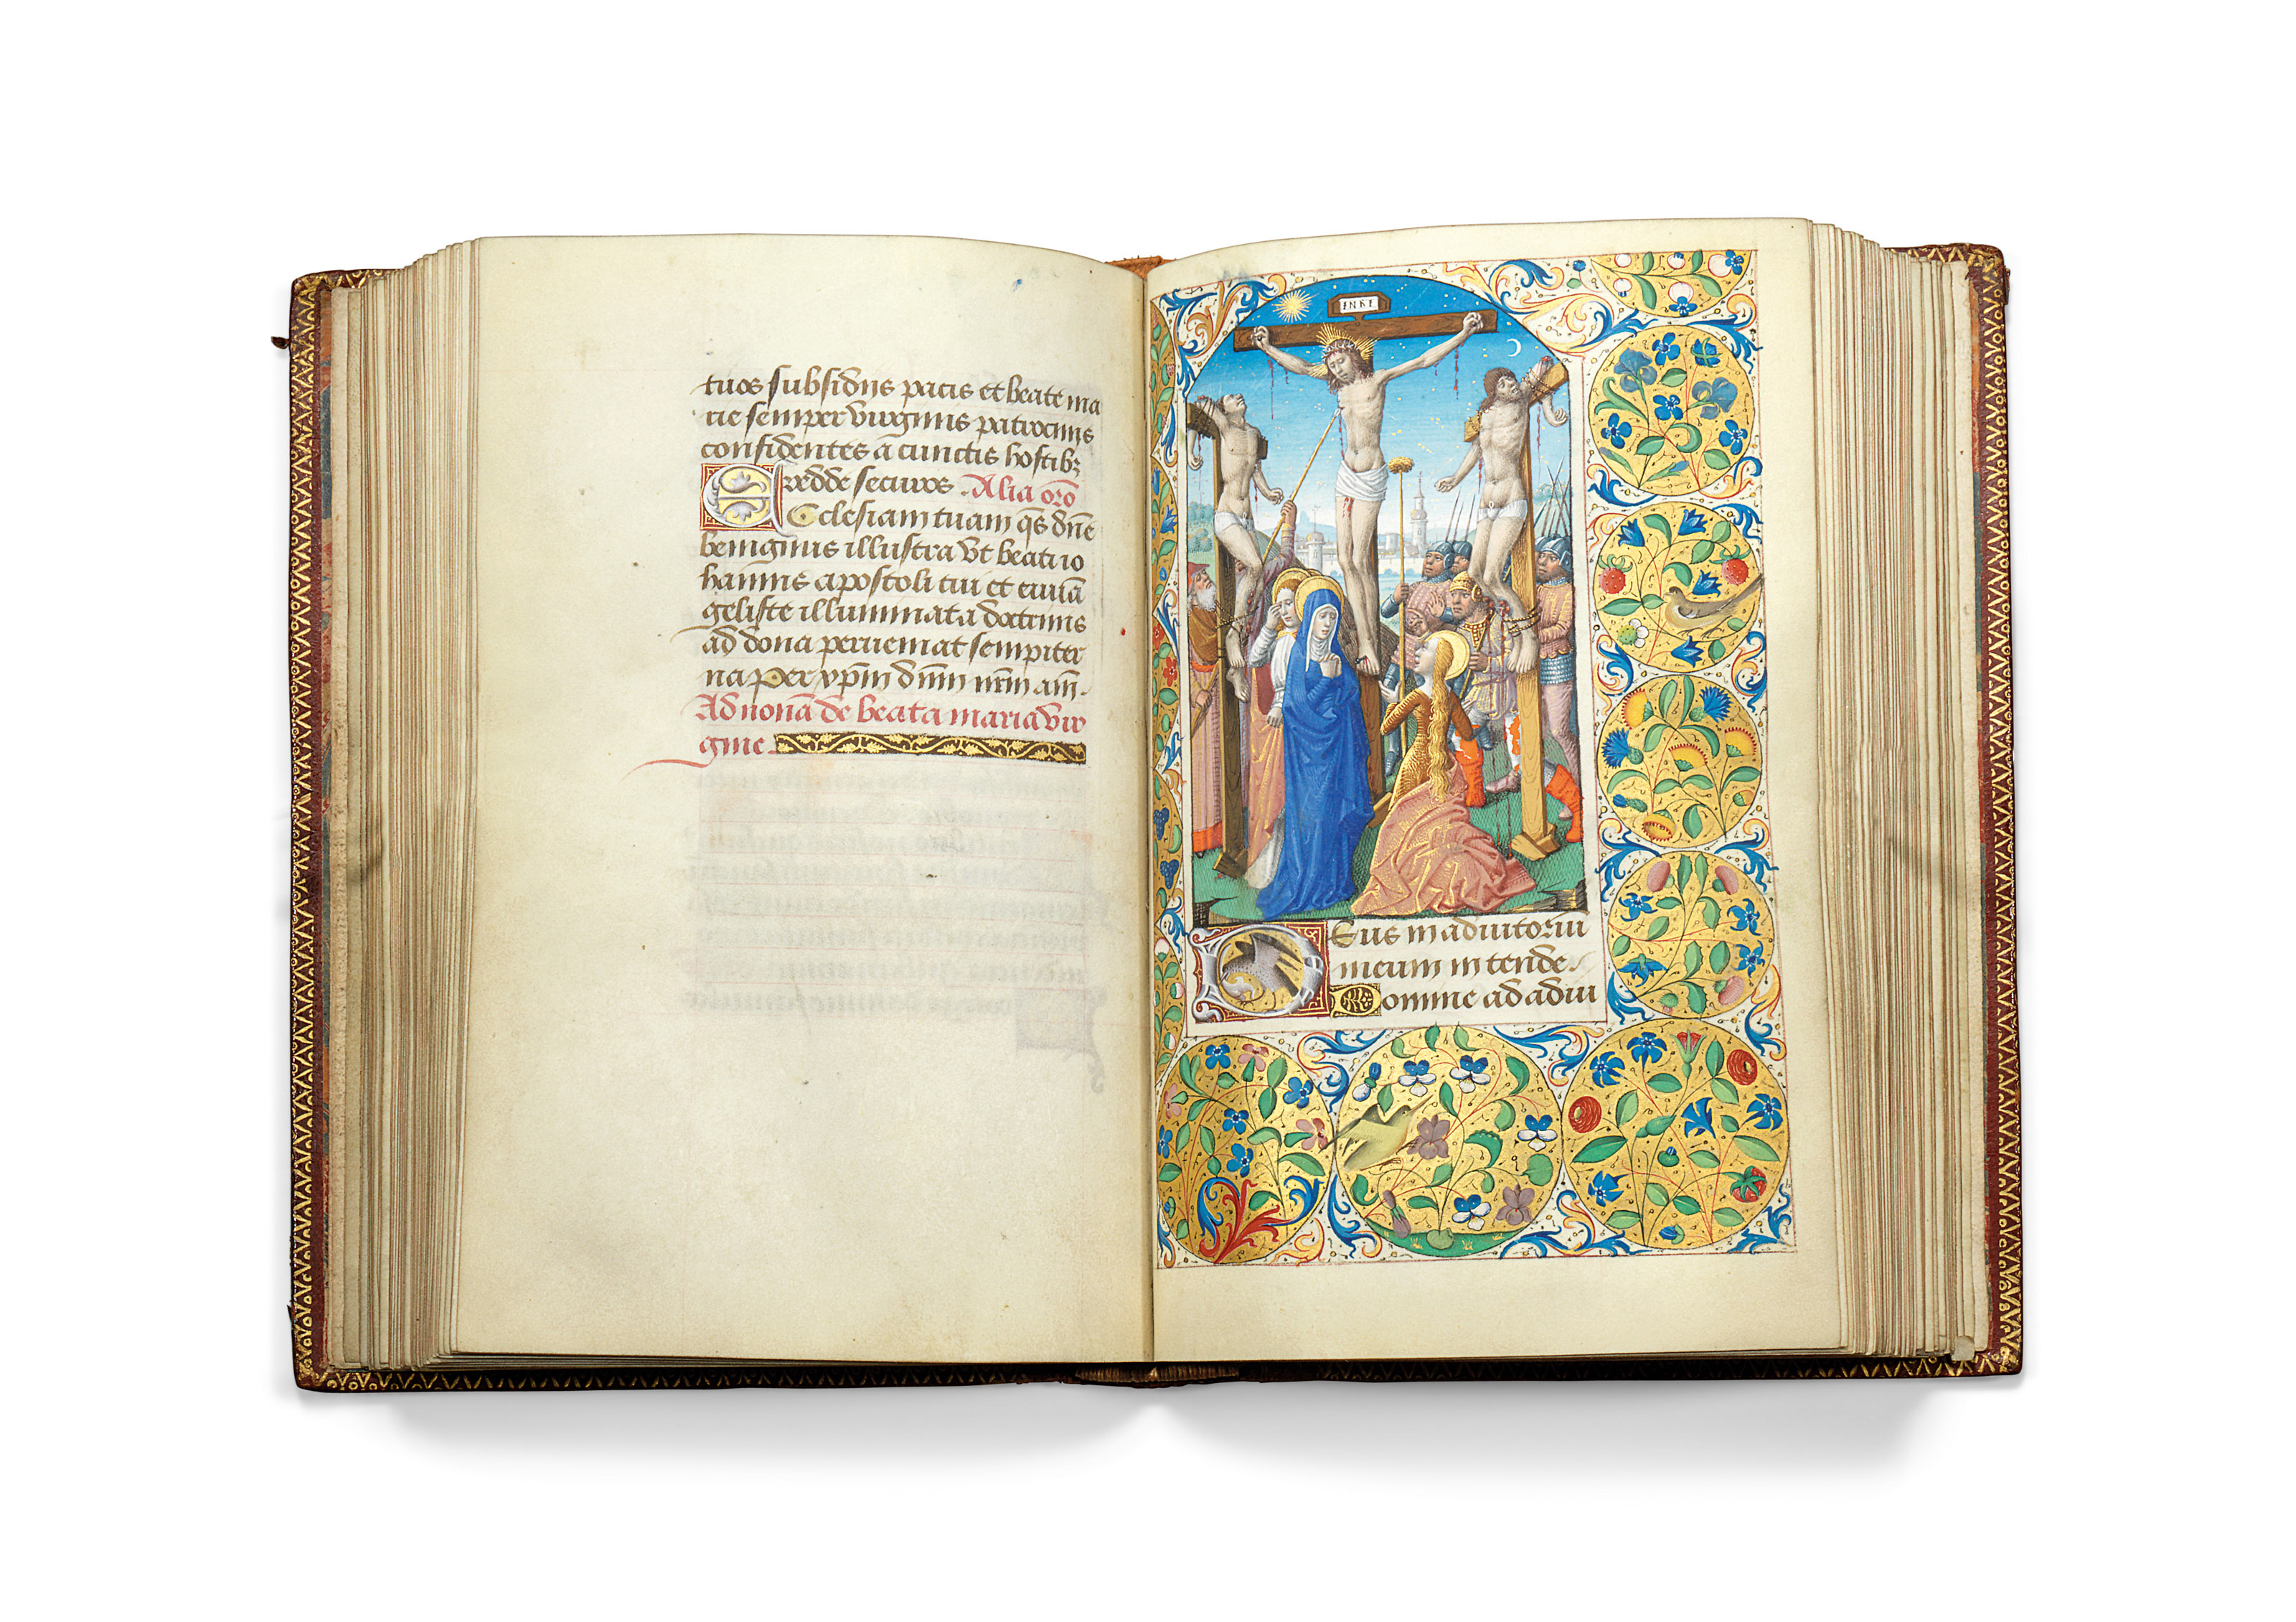 BOOK OF HOURS, use of Paris, in Latin and French, illuminated manuscript on vellum [Paris, c.1490 and third decade of the 16th century]